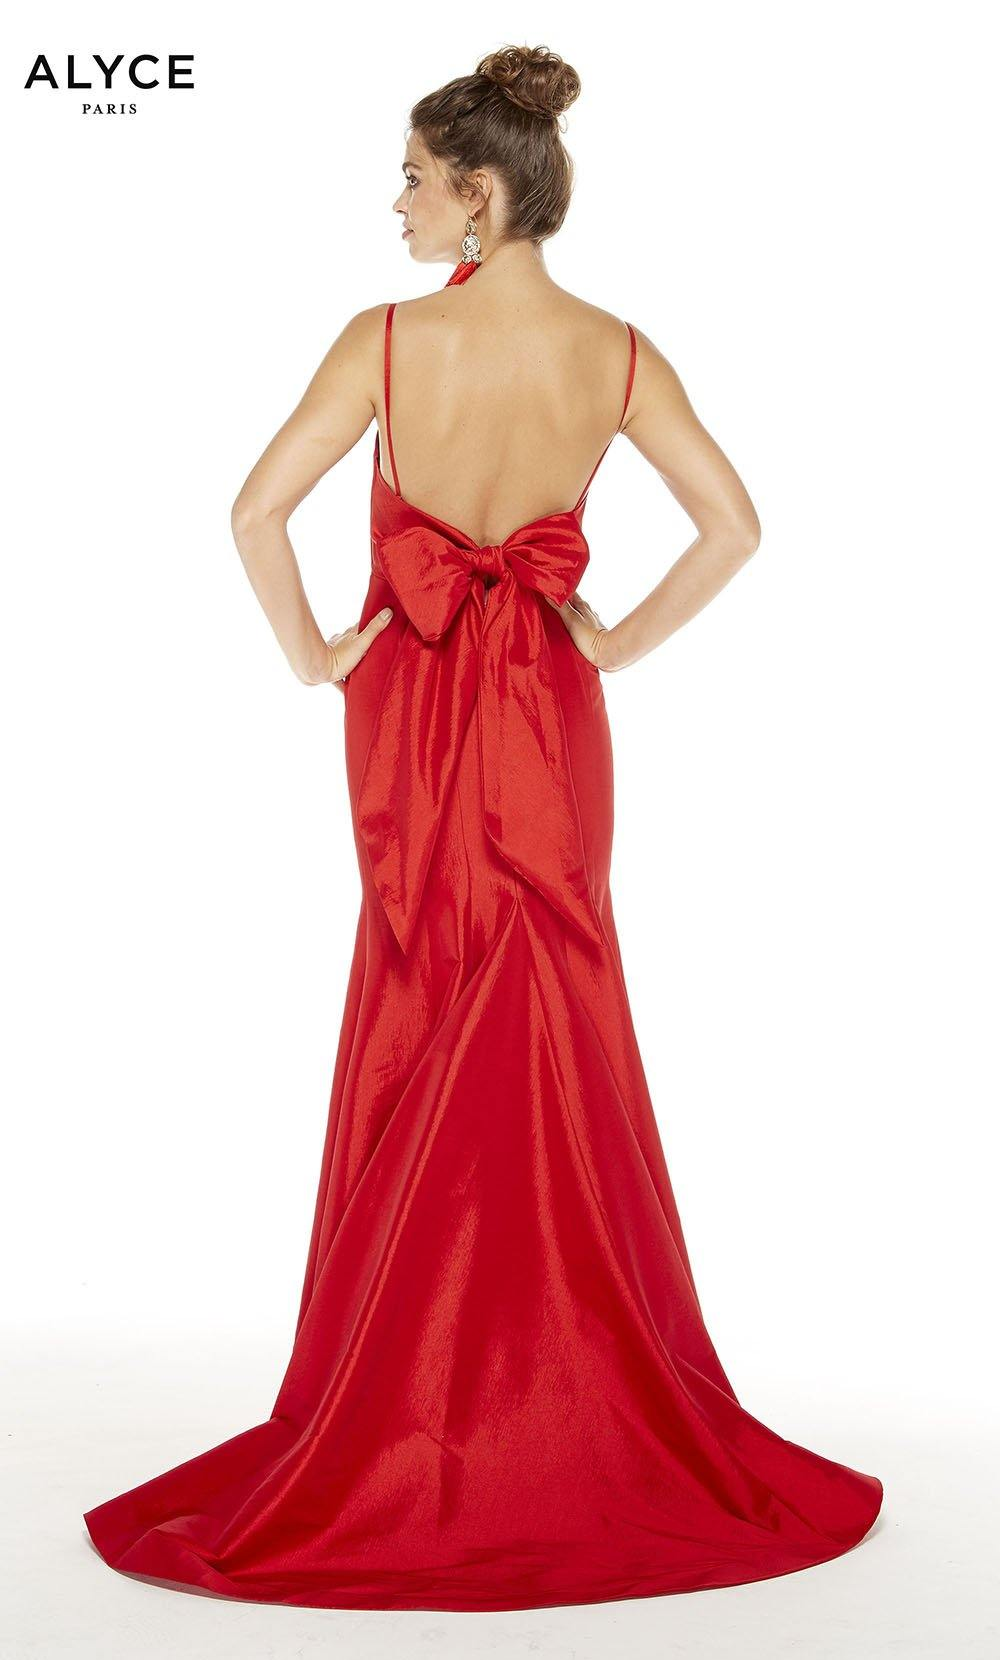 Red formal dress with a squared neckline